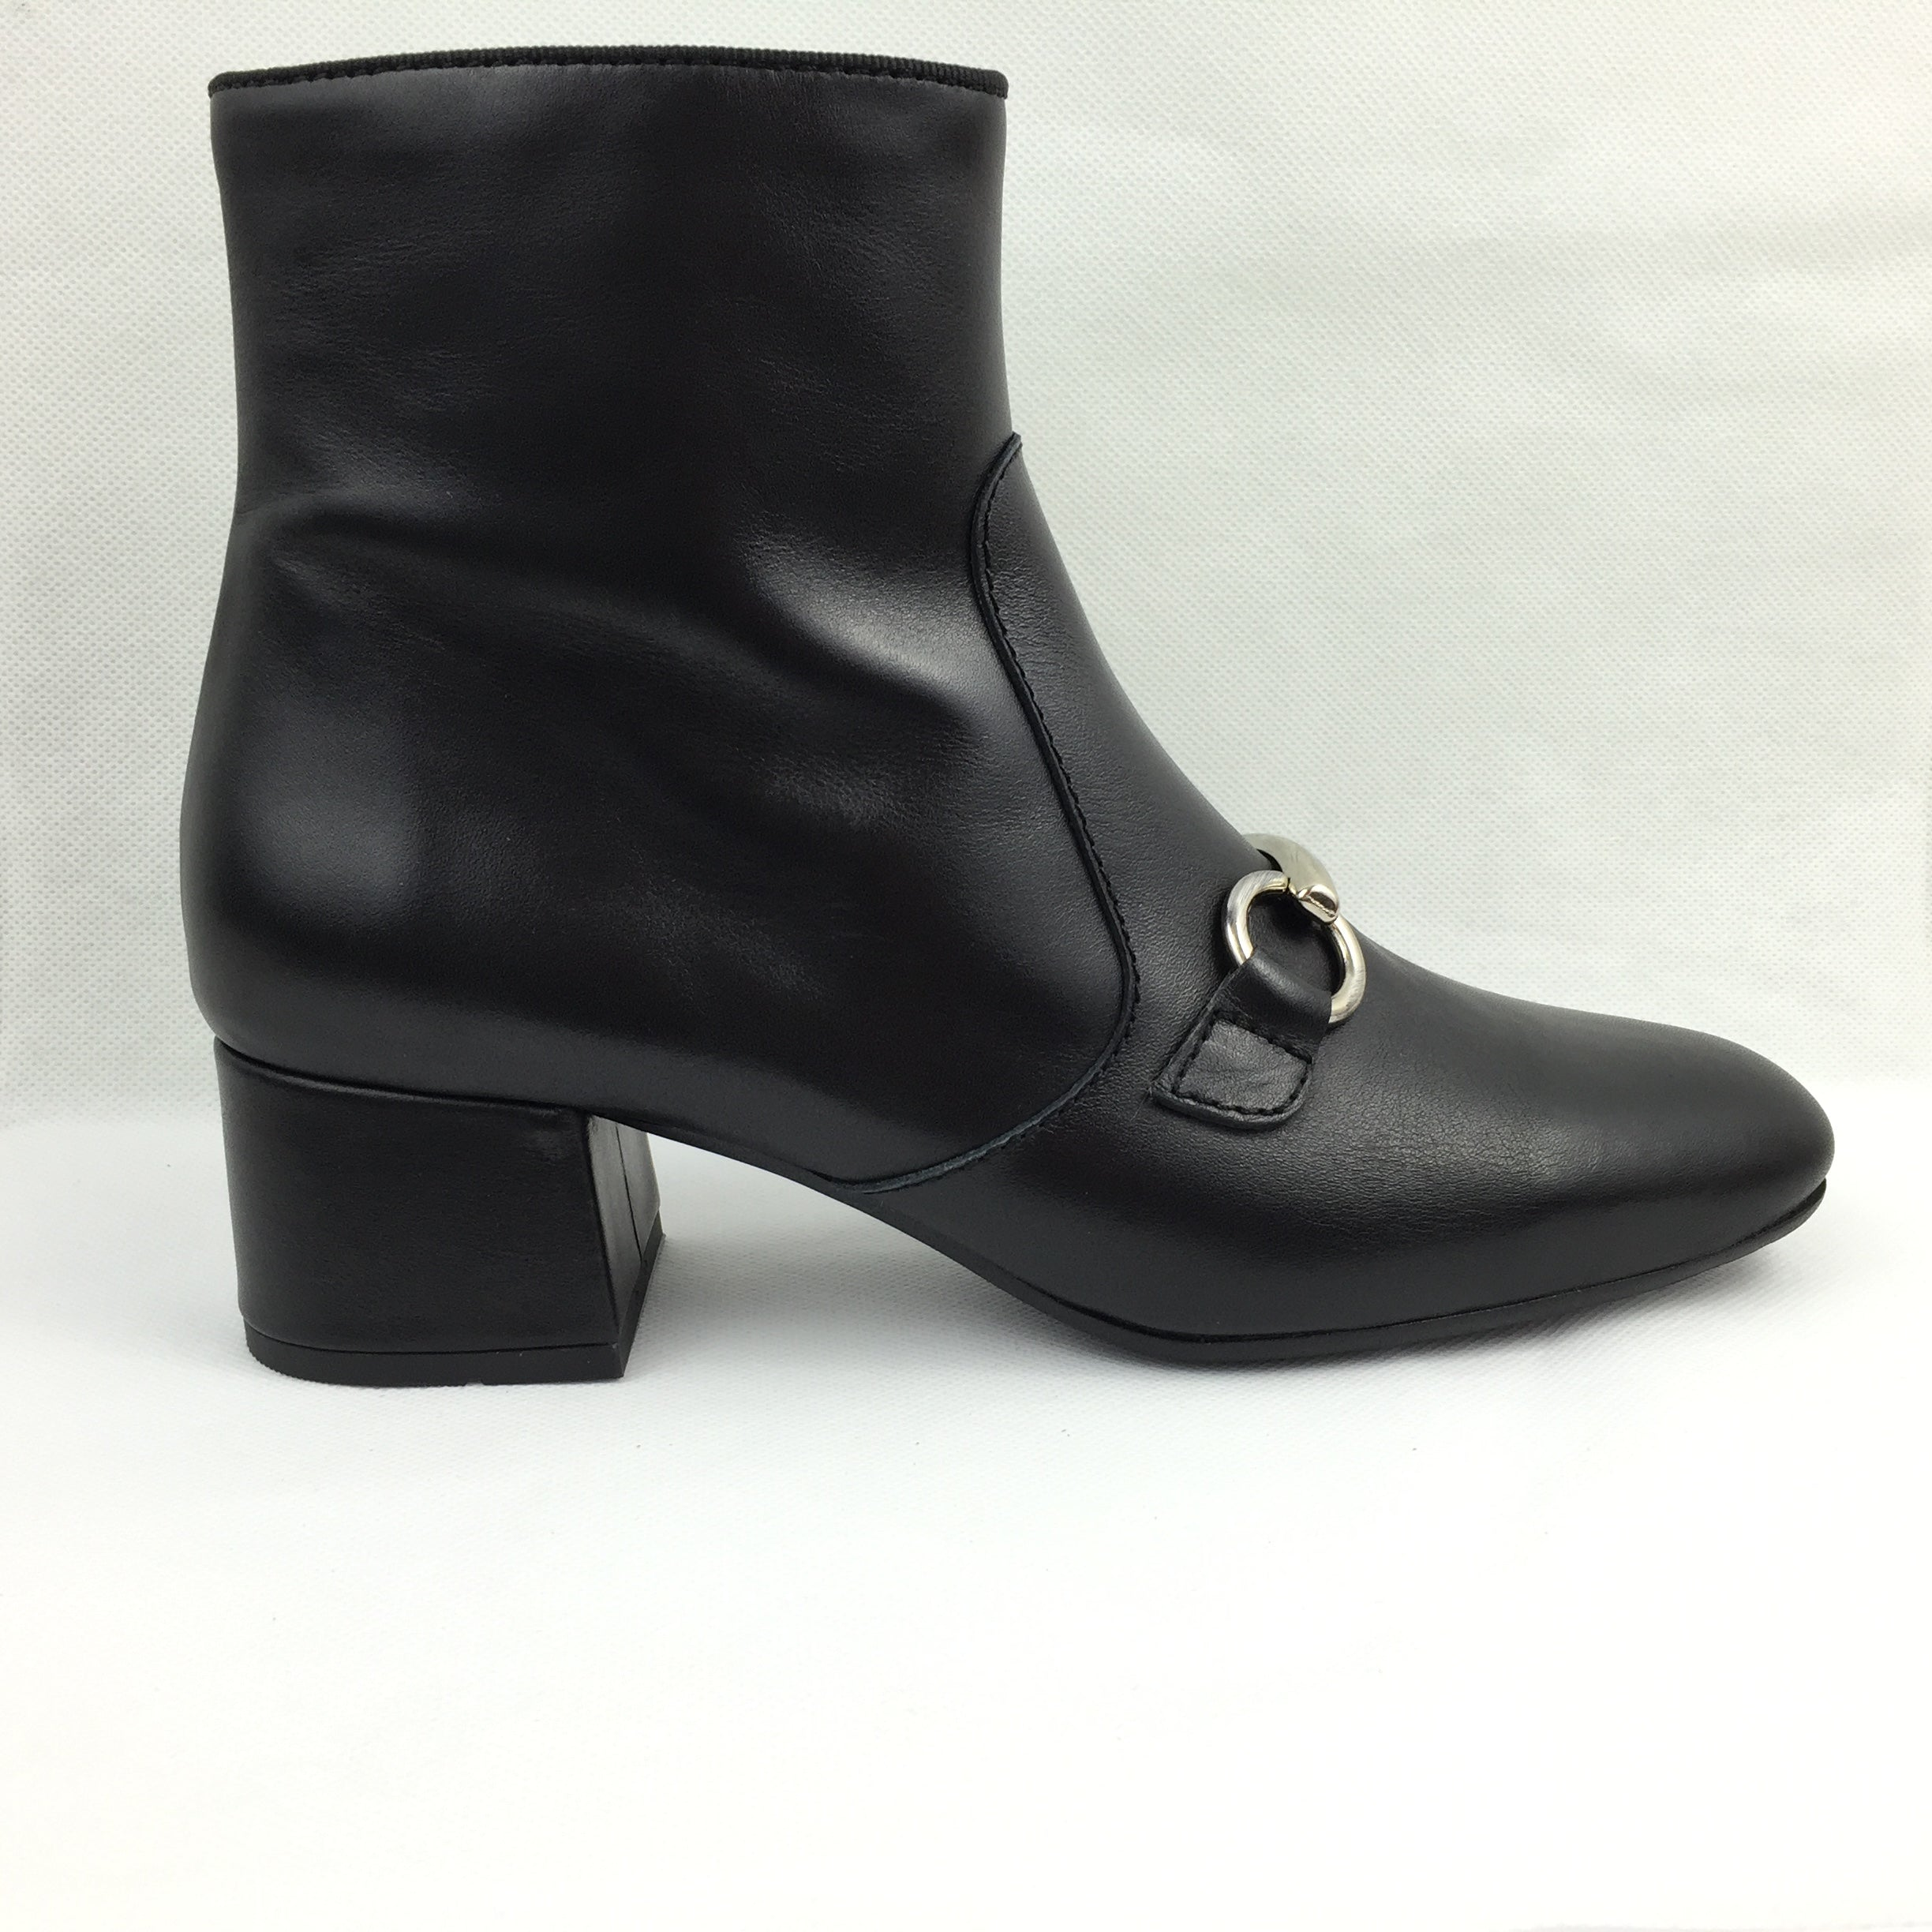 Kanna Black leather block heel . ankle boot. Gucci inspired buckle. comfortable